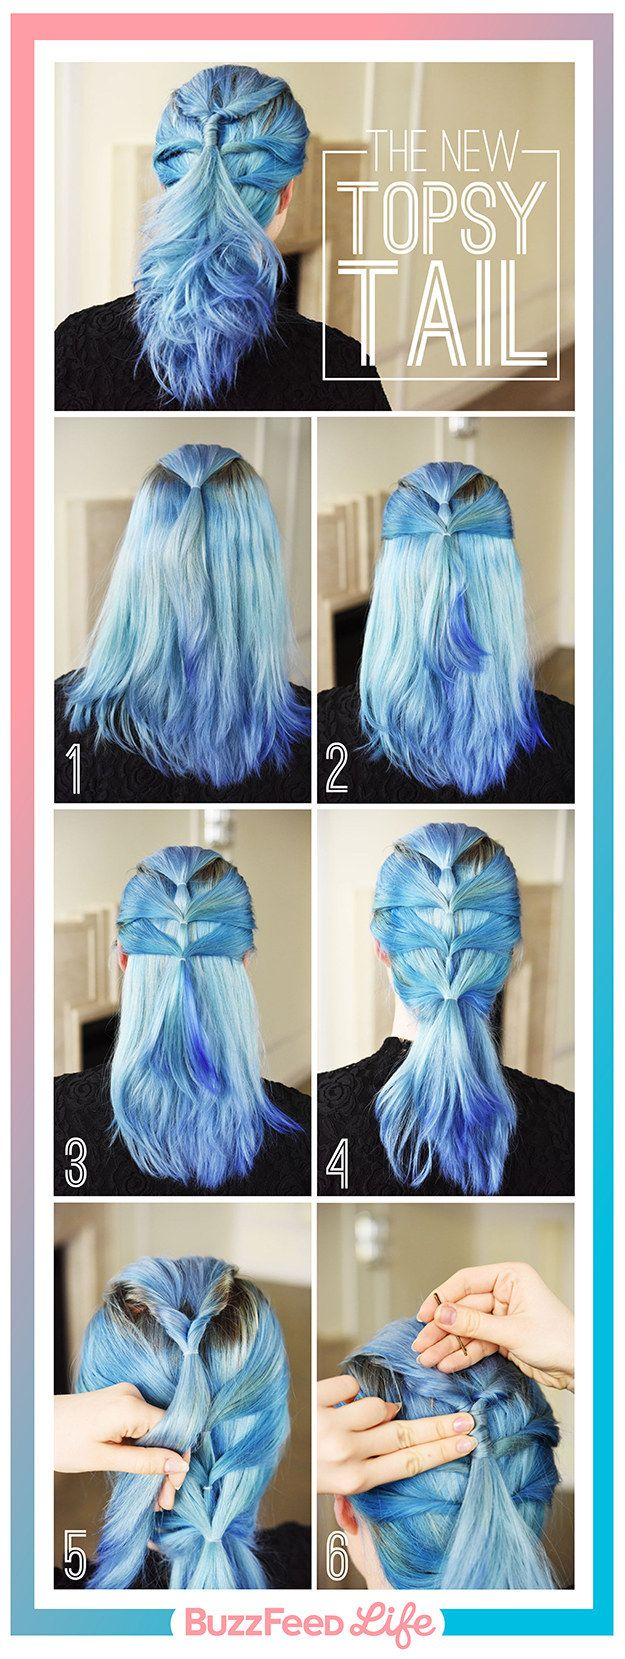 The New Topsy Tail   26 Incredible Hairstyles You Can Learn In 10 Steps Or Less